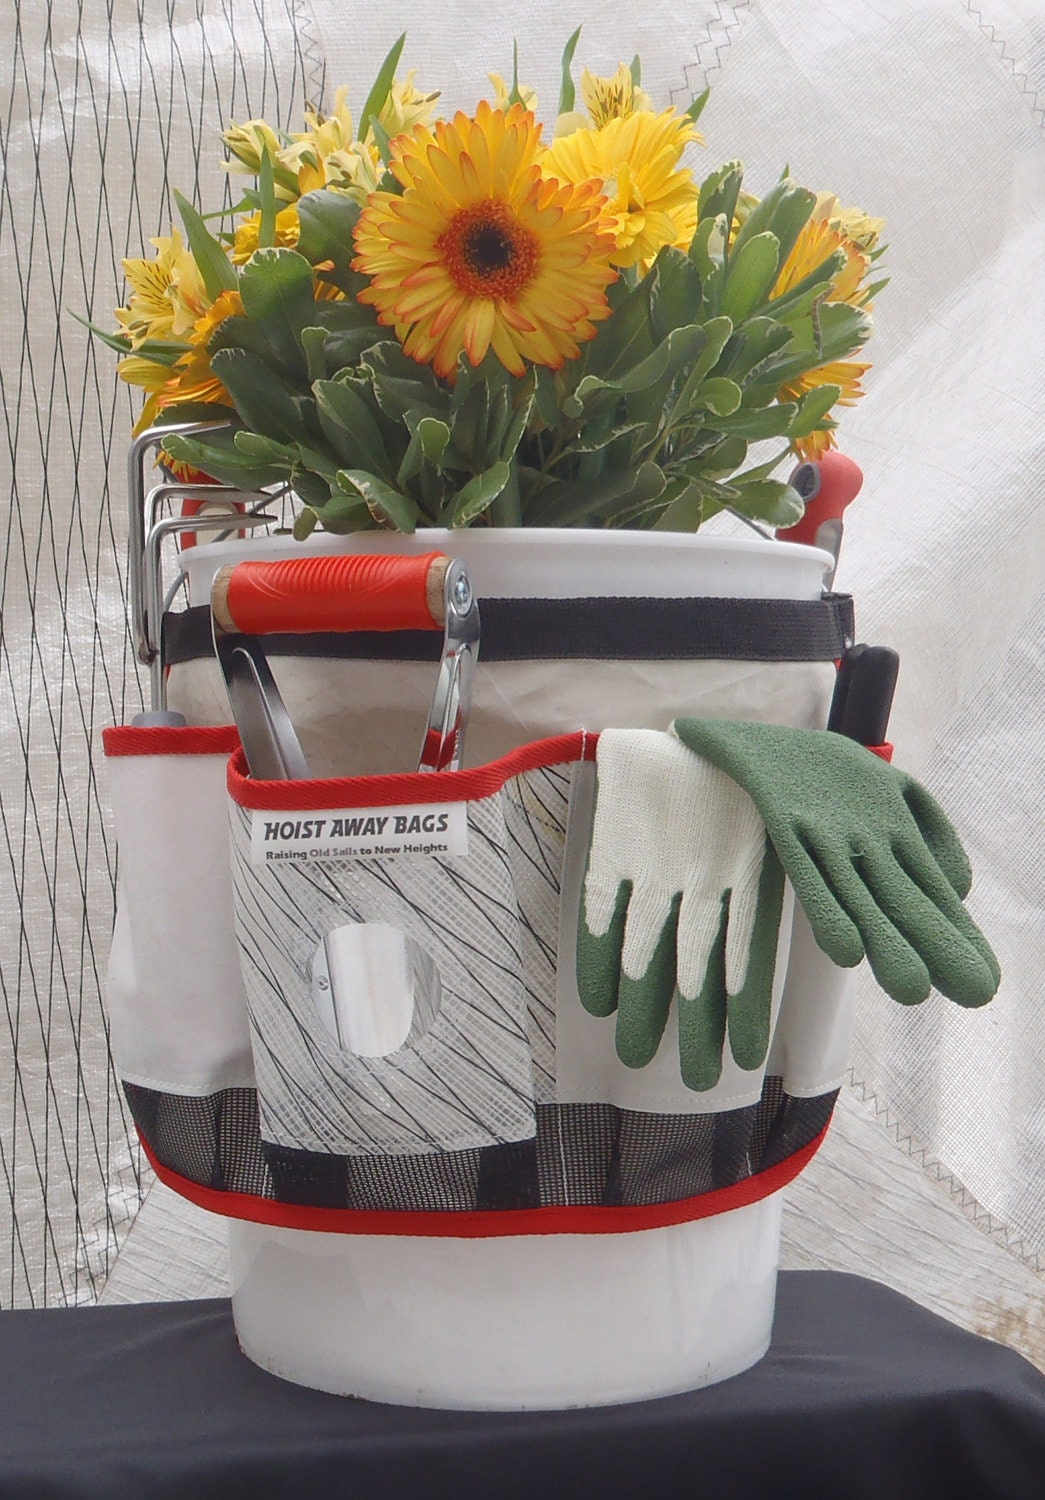 Eco Mothers Day Gift Garden Gifts for Gardening Nautical Gift Garden Tool Caddy Gardening Apron Garden Apron Bucket Organizer Tool Box